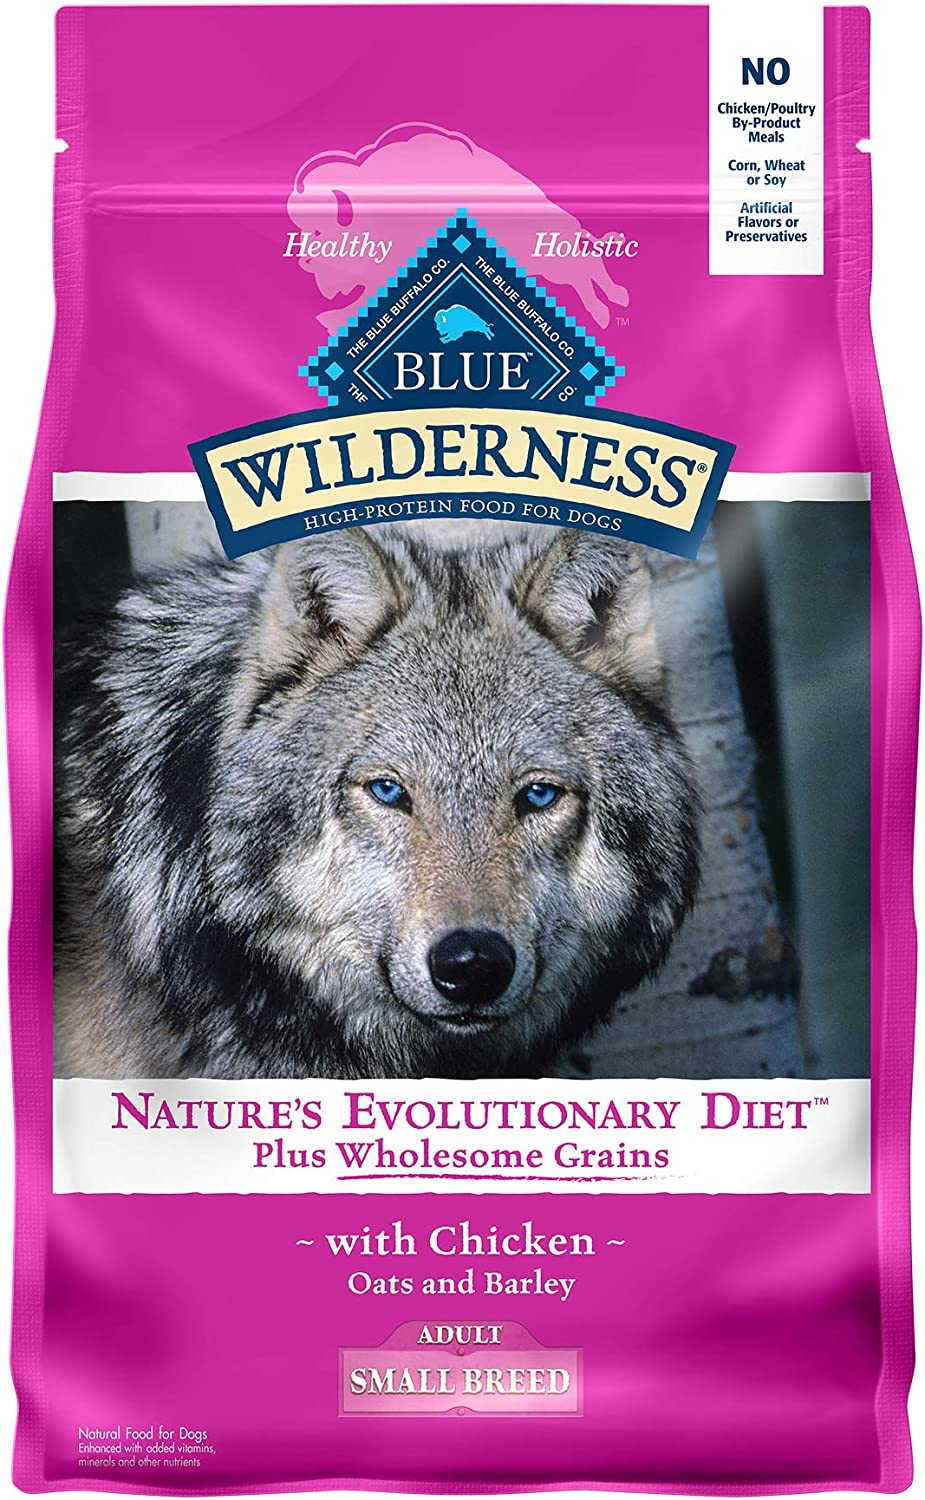 Blue Buffalo Wilderness High Protein Natural Adult Small Breed Dry Dog Food plus Wholesome Grains Chicken 4.5-lb